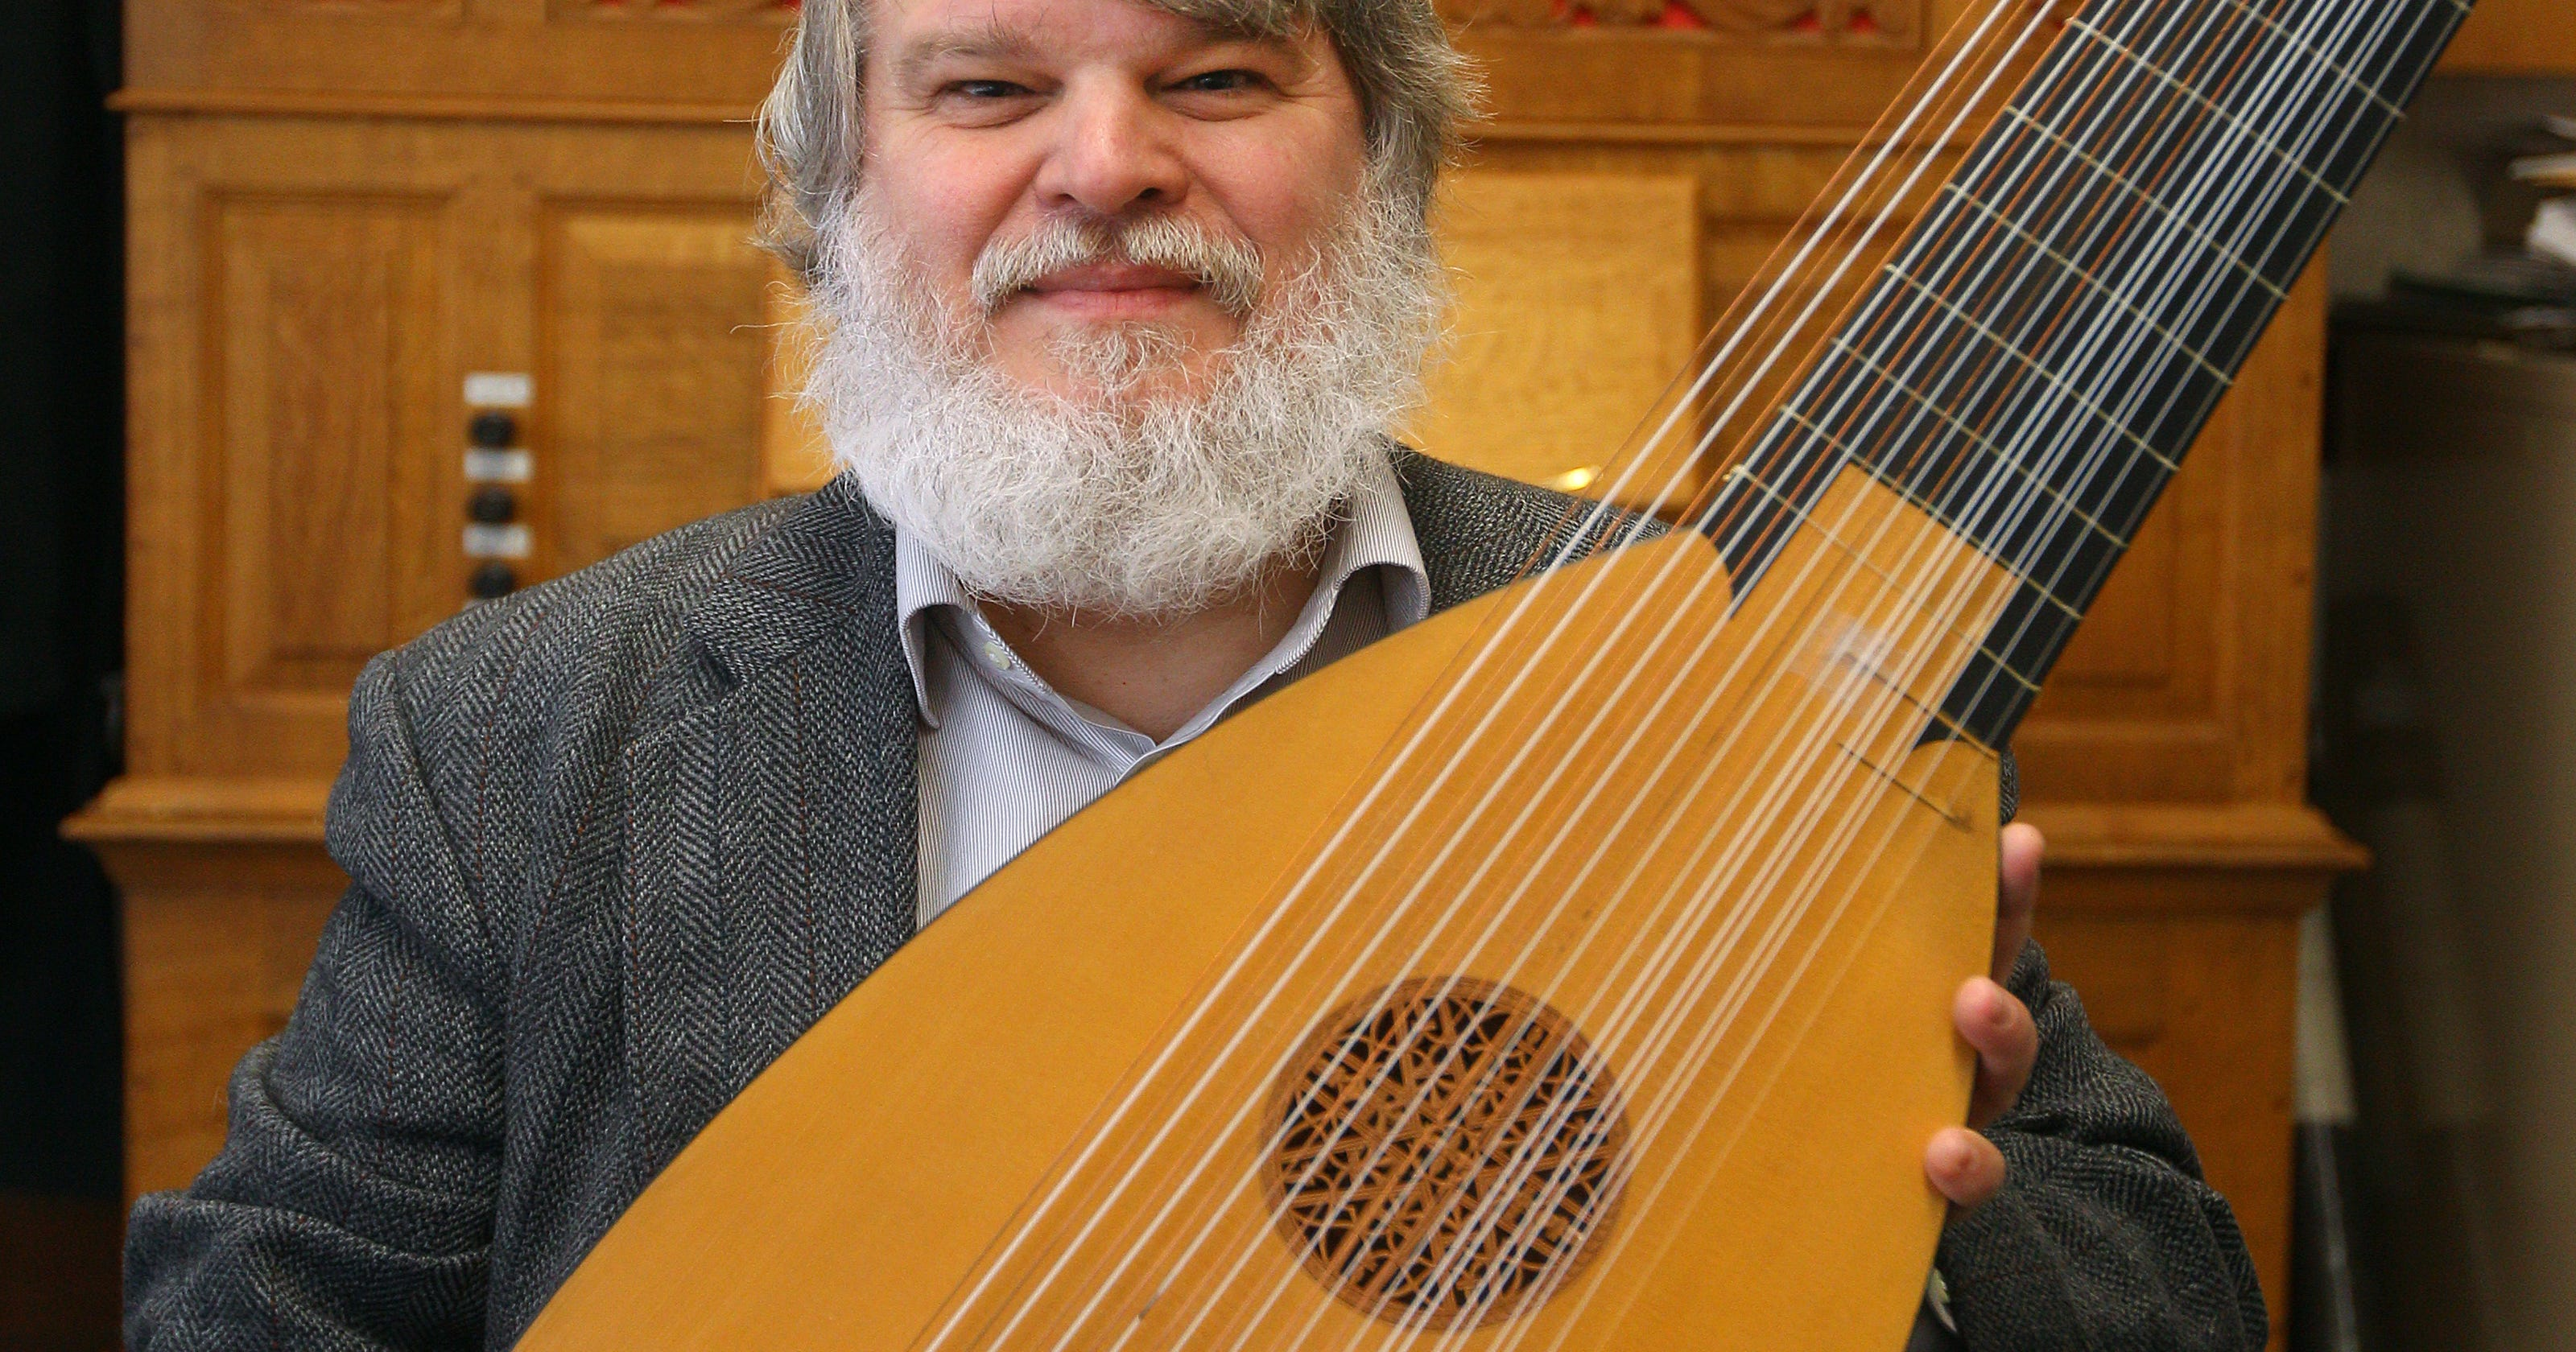 Paul Odette Giving Rare Local Concert